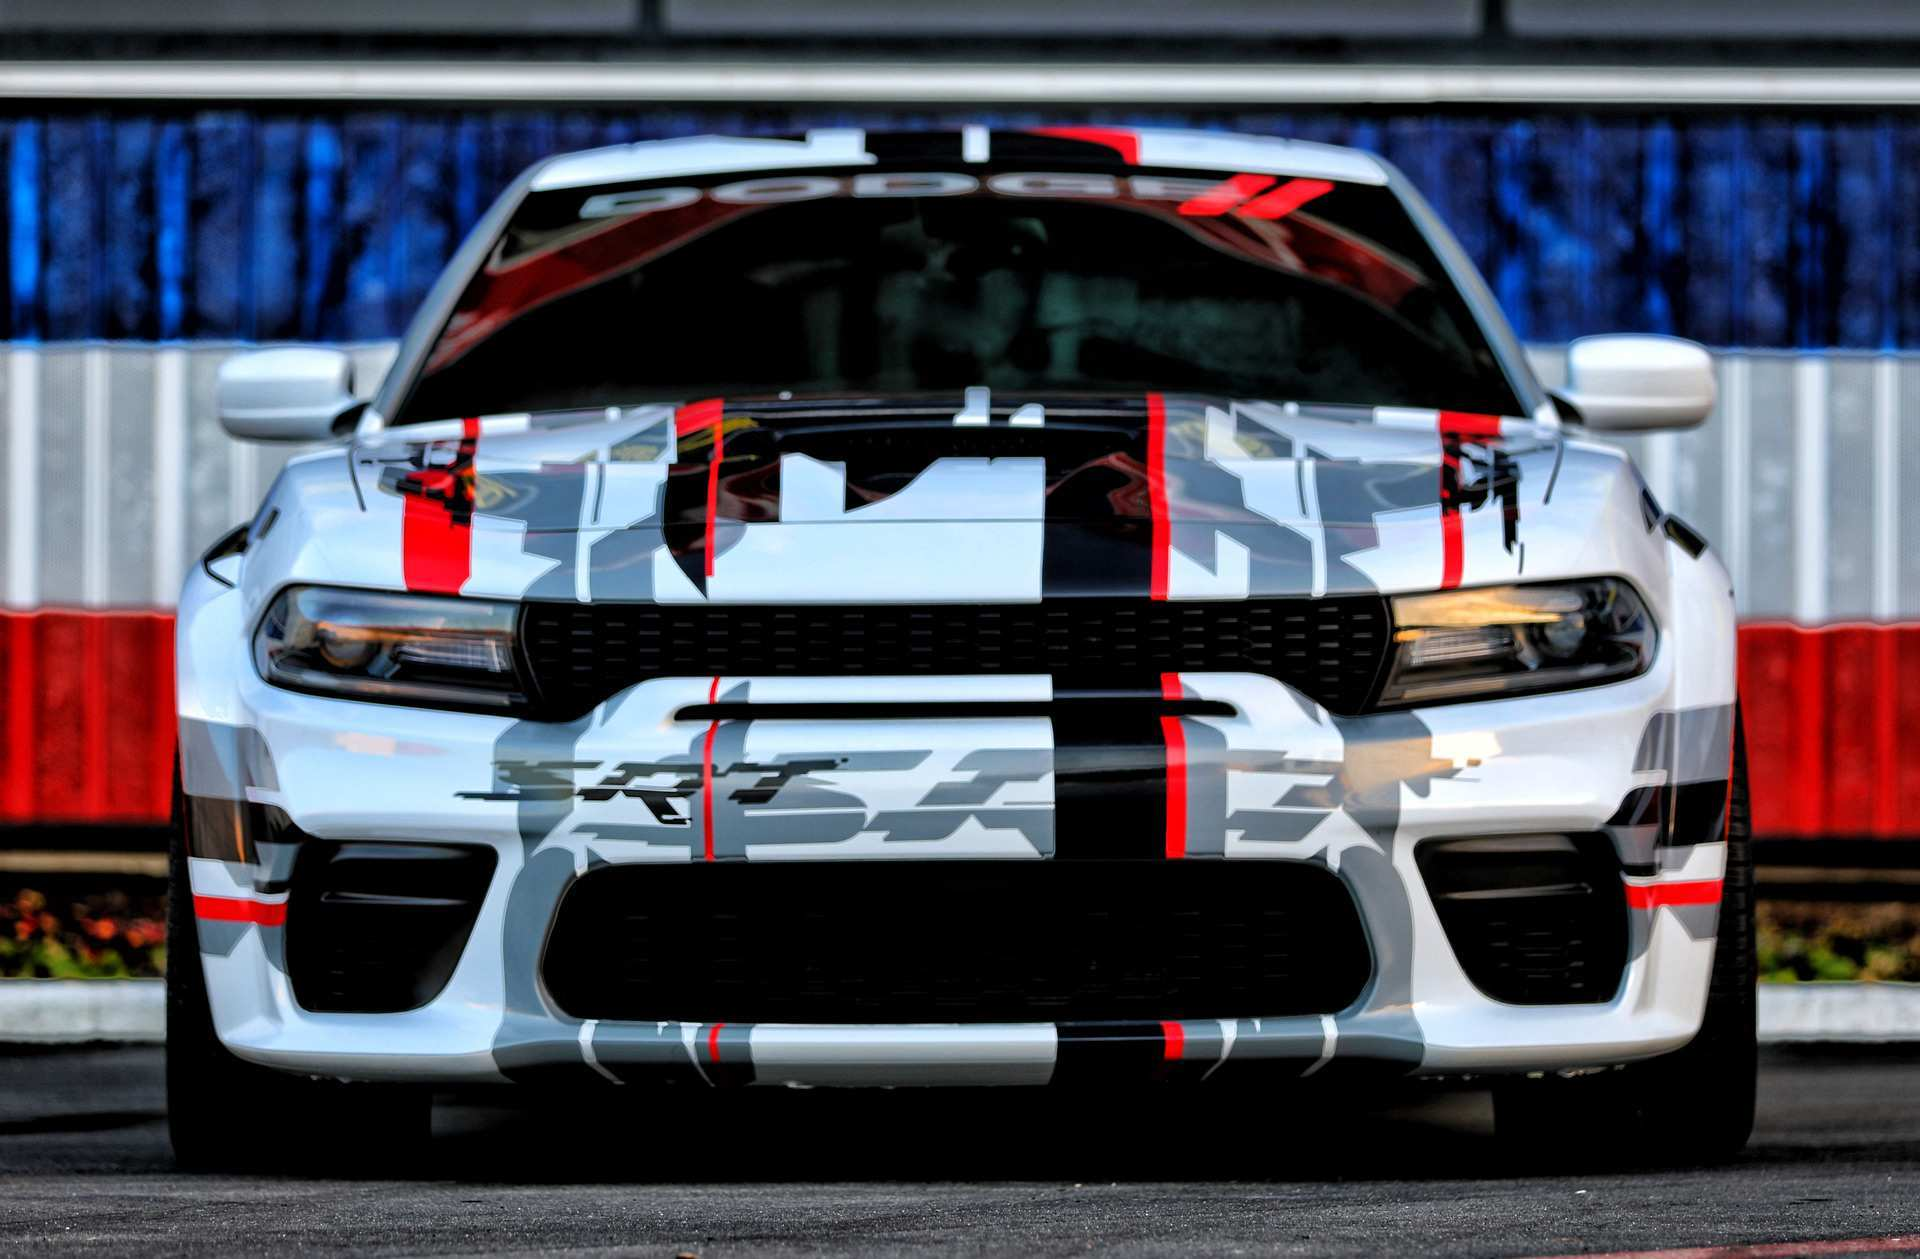 76 New Dodge Concept Cars 2020 Picture by Dodge Concept Cars 2020